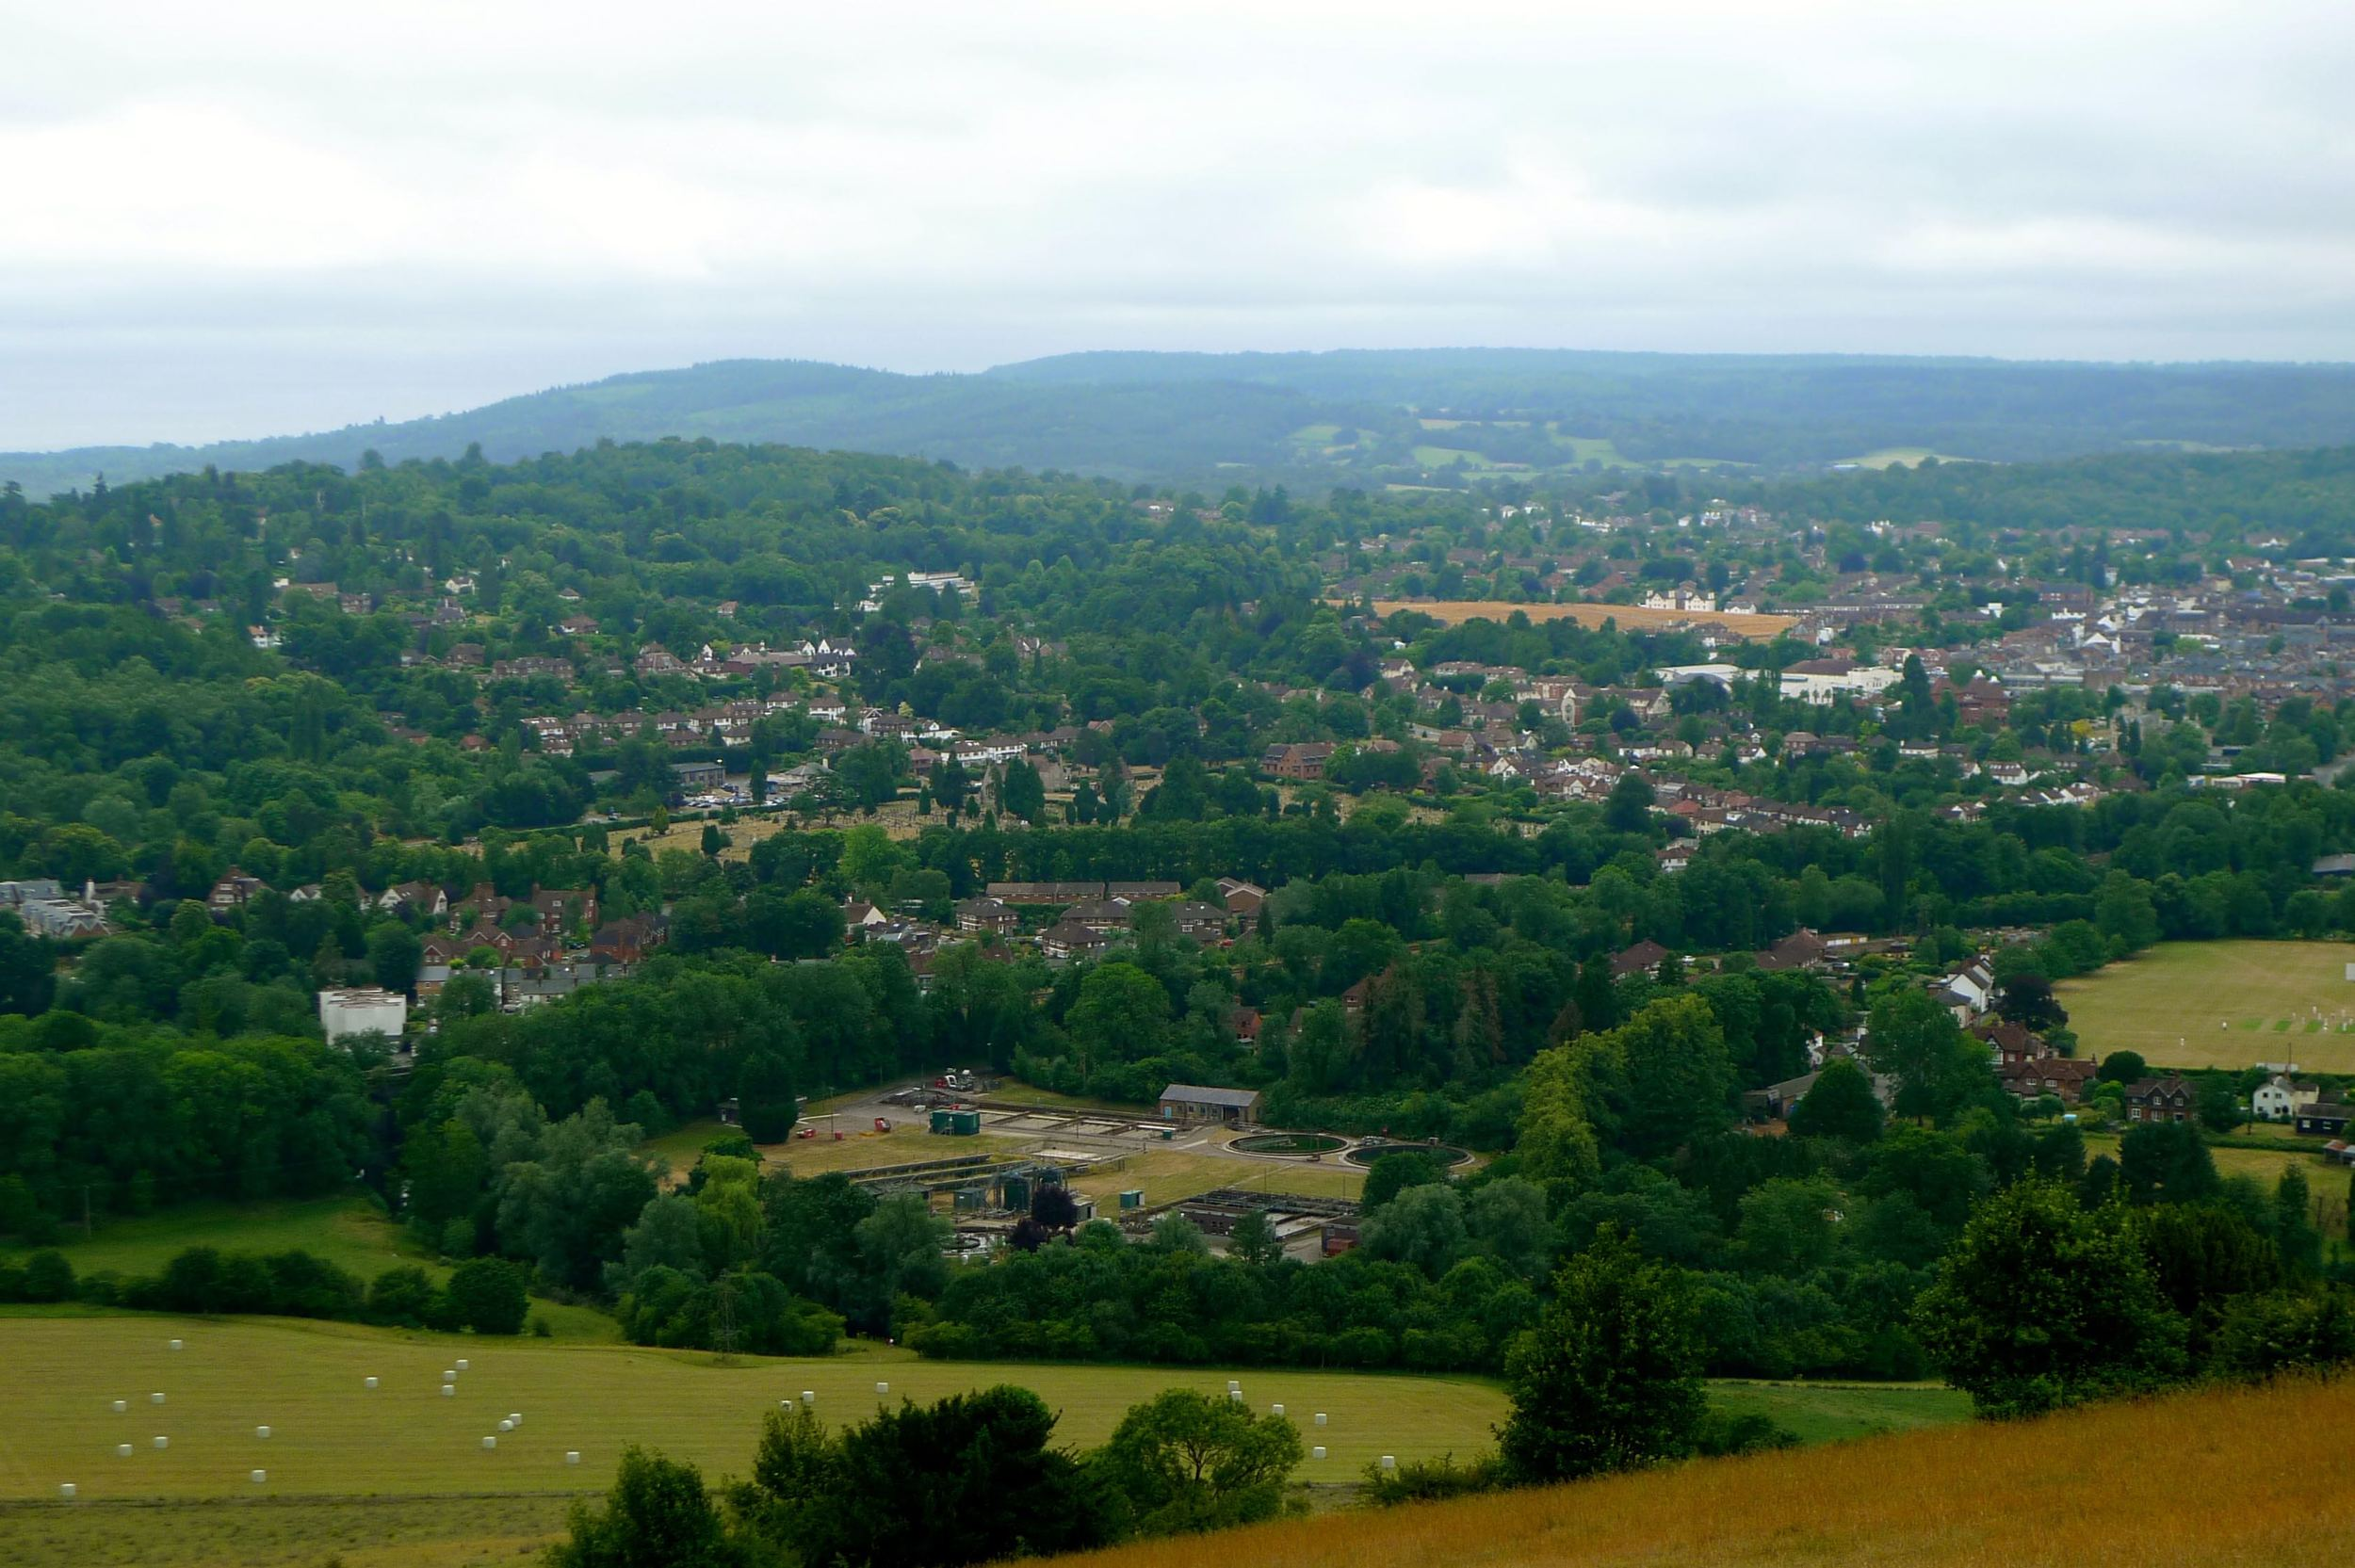 LEITH HILL, SIX MILES IN THE DISTANCE